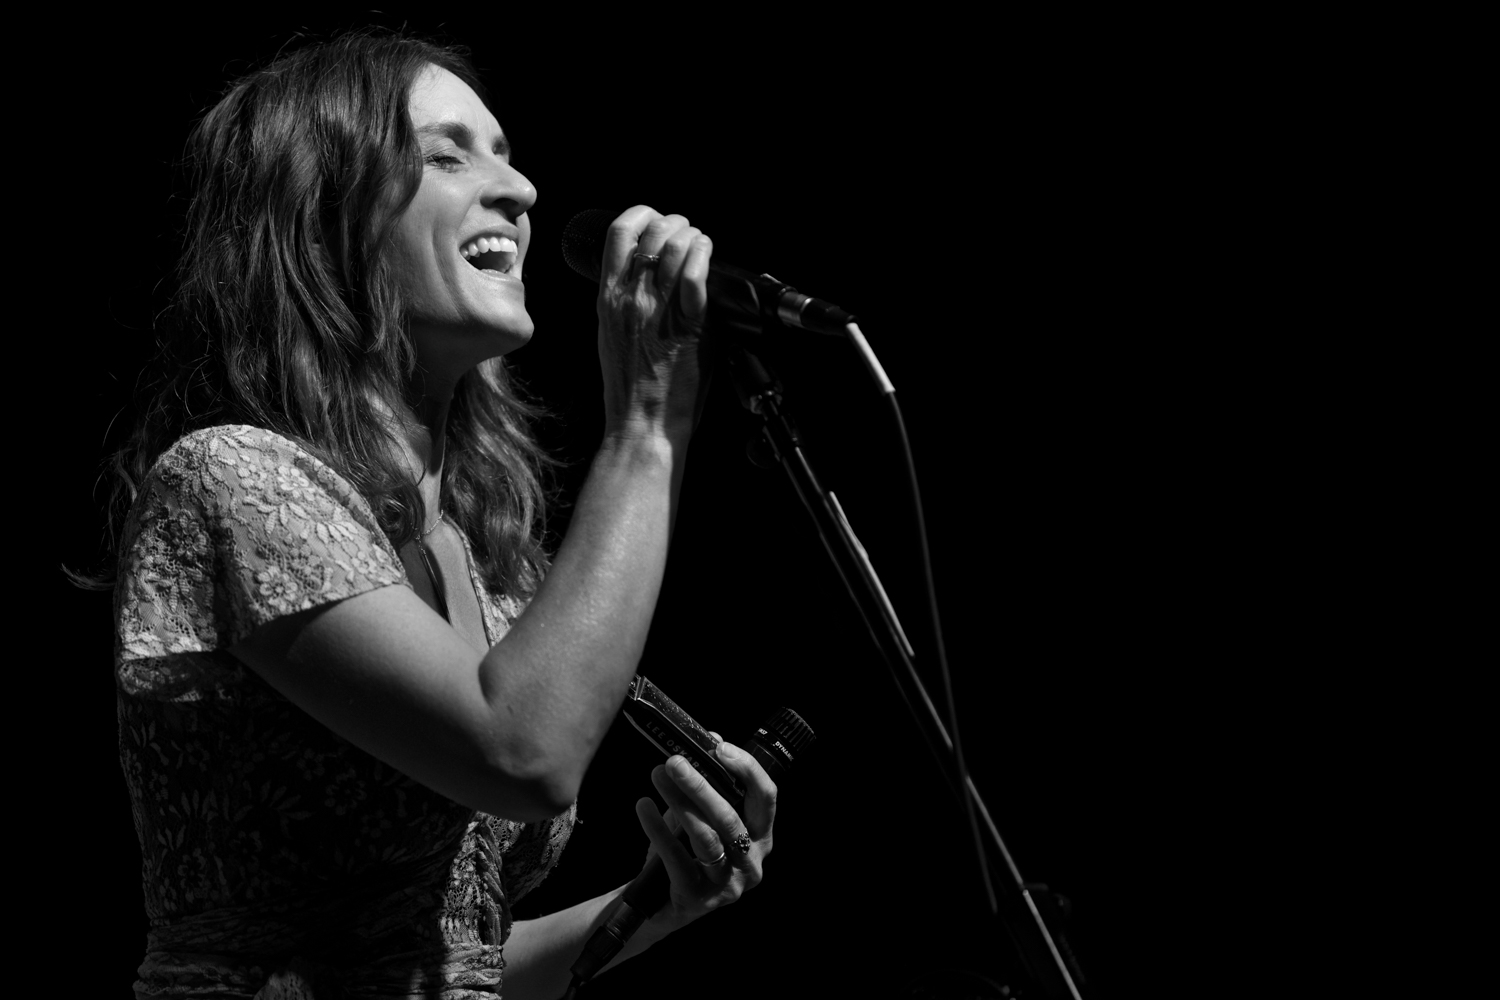 20190801 078 Freight & Salvage - The Waifs by Jon Bauer.jpg